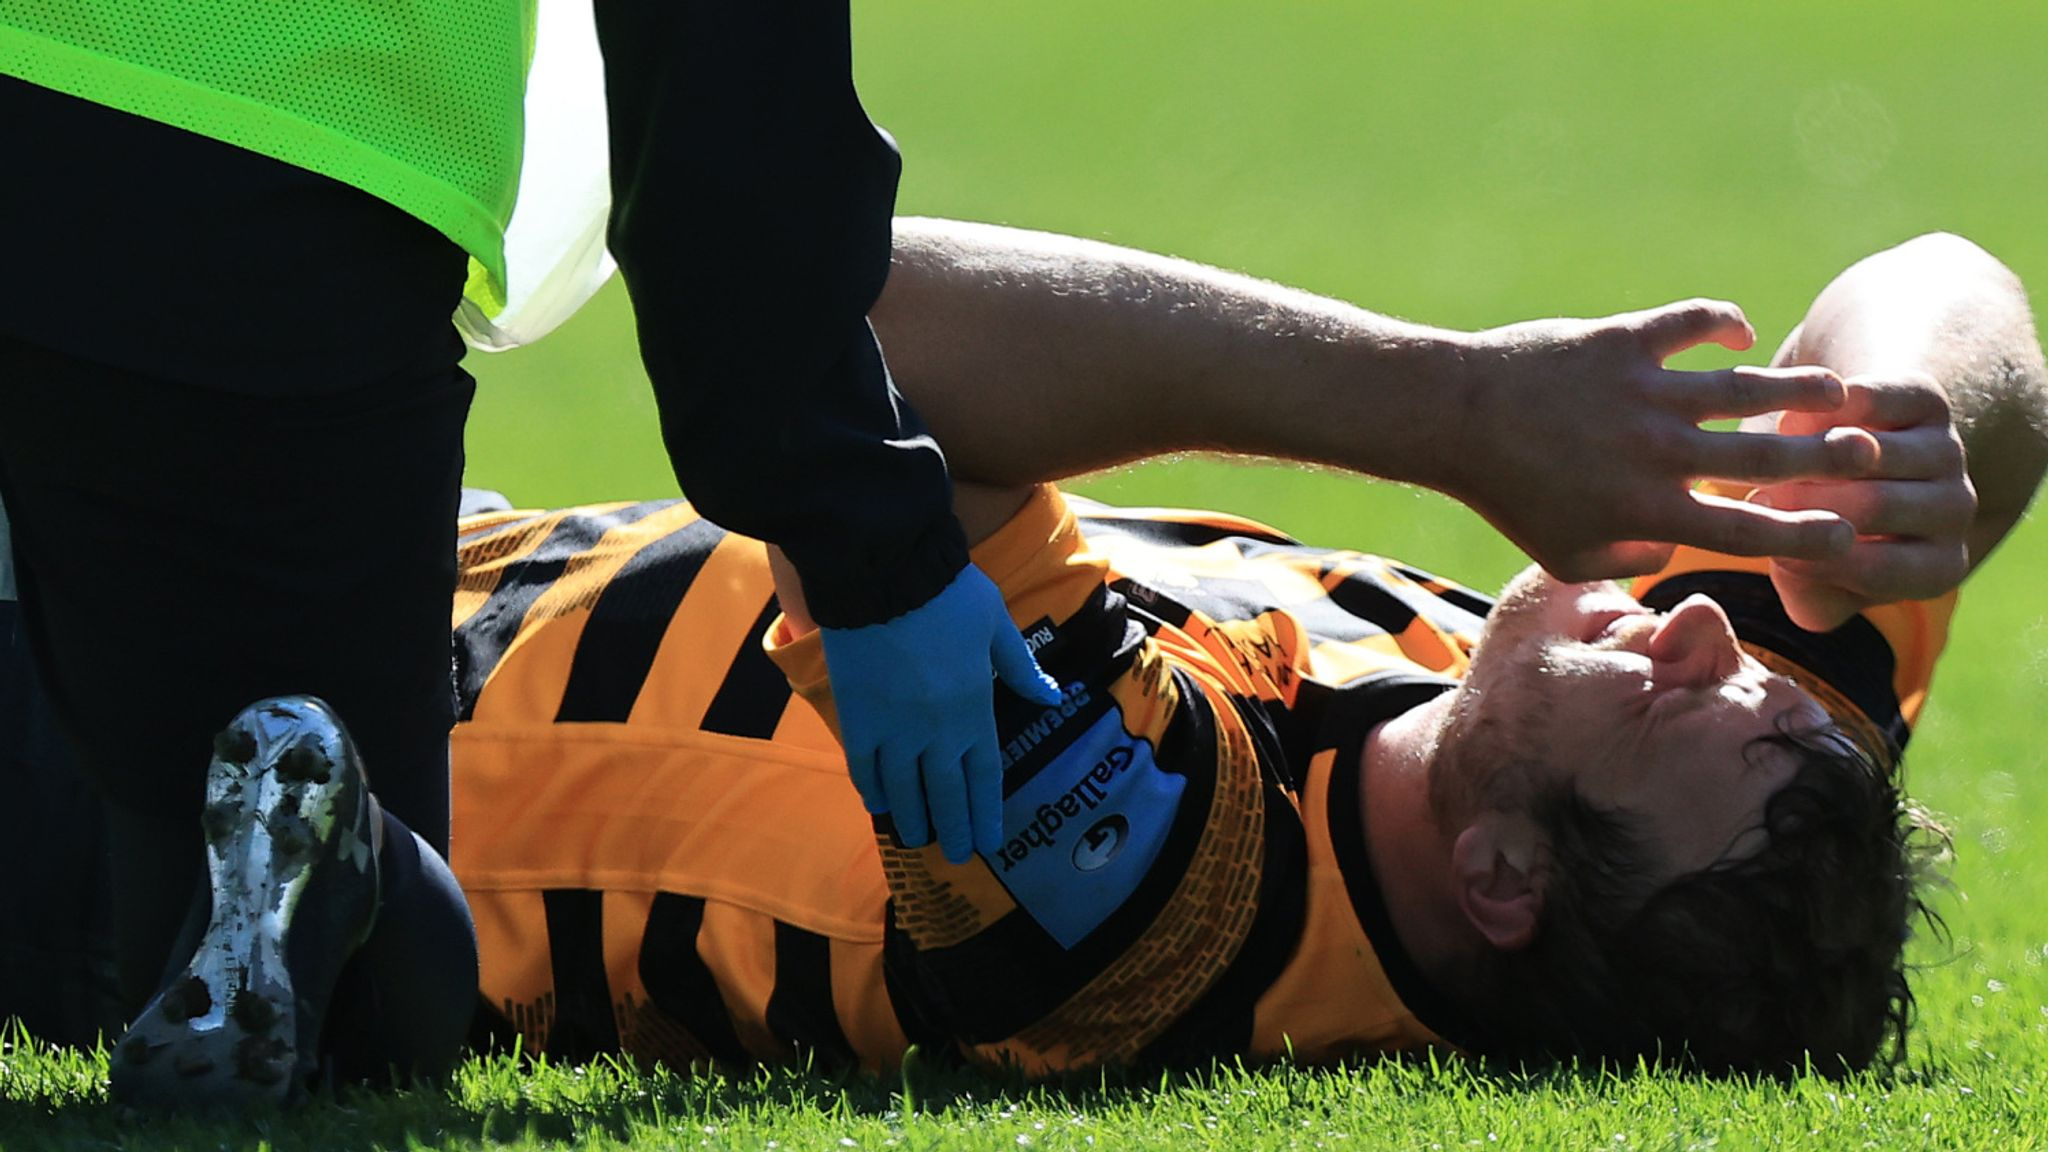 Joe Launchbury: Wasps captain ruled out of British and Irish Lions tour due  to injury | Rugby Union News | Sky Sports